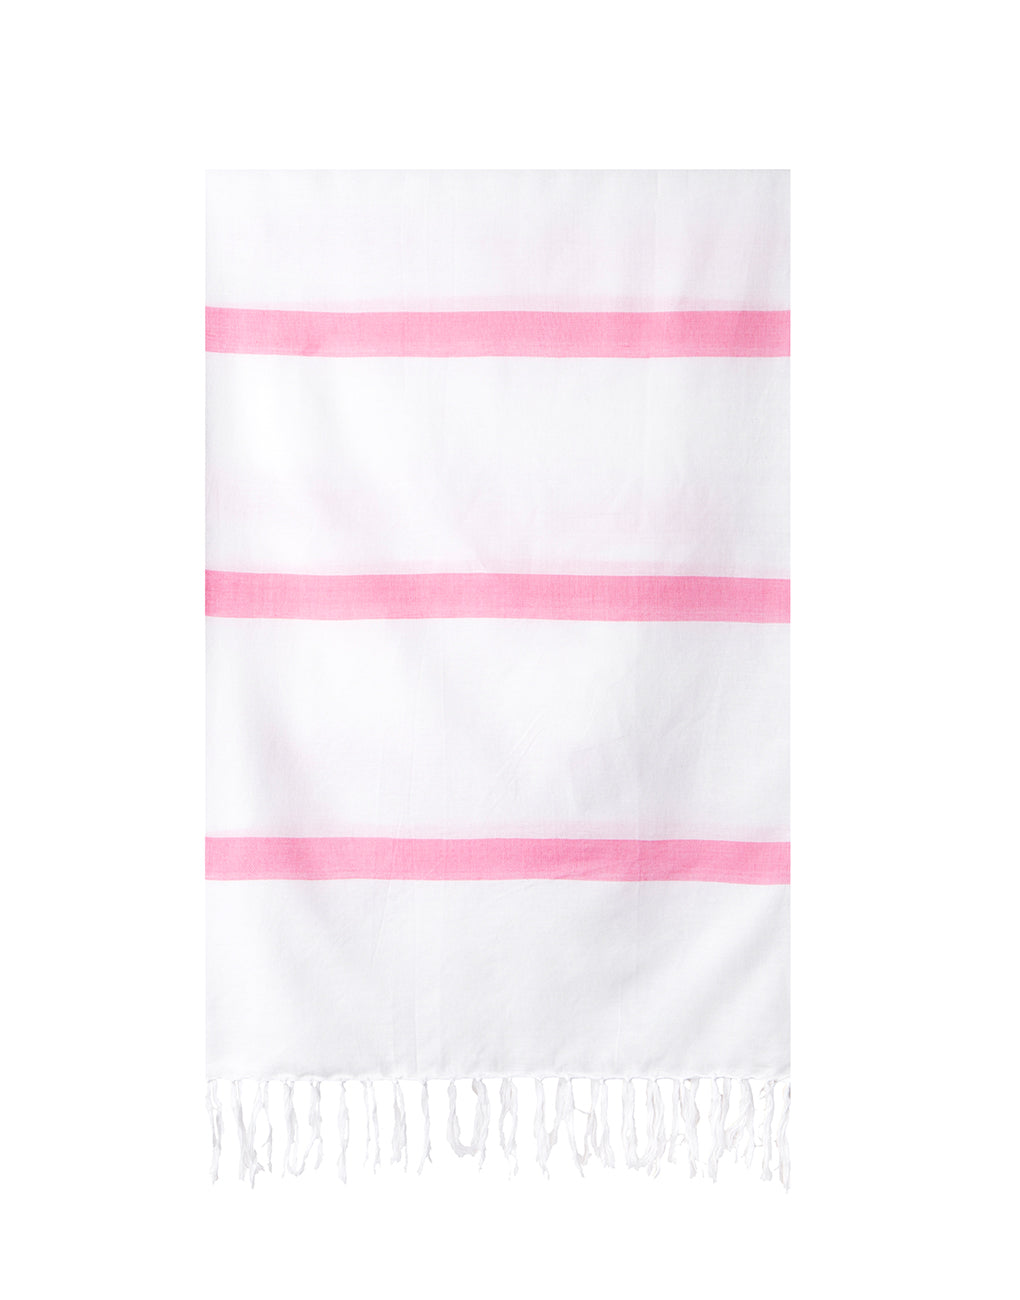 Lightweight Fringe Towel In Style No. 3 In Pink | The Little Market